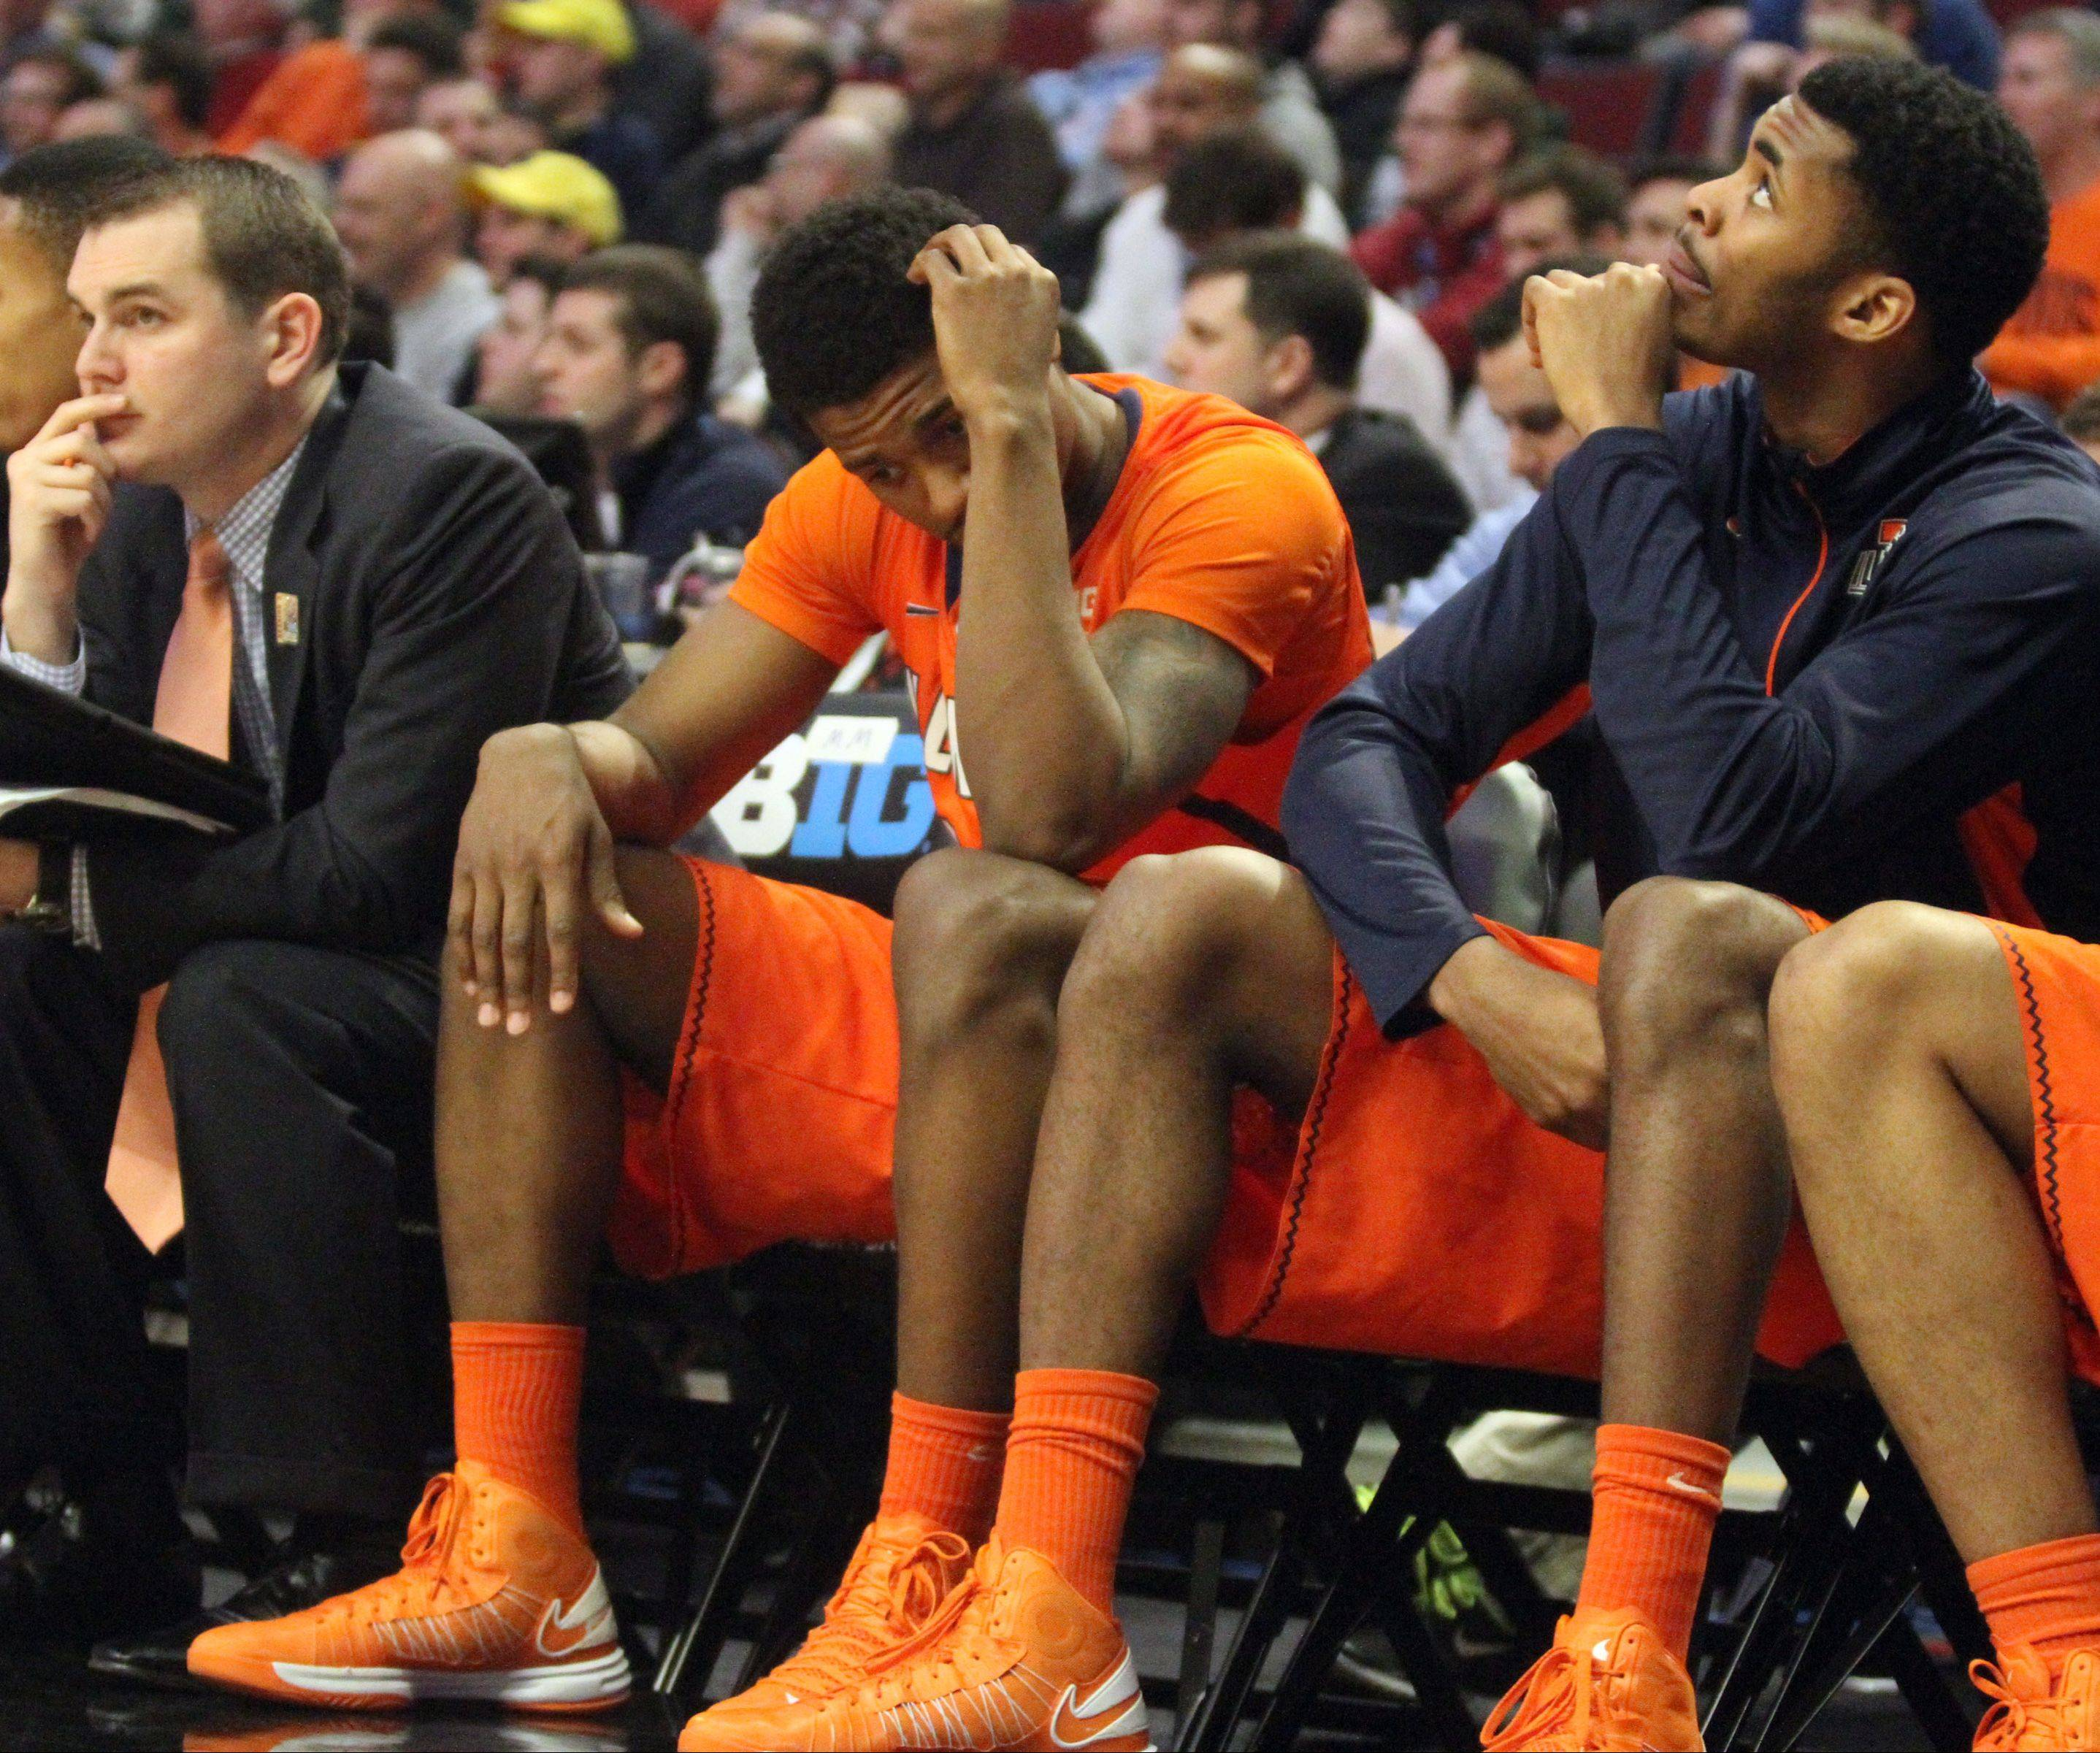 Illinois players react Friday during the final seconds of their loss to Indiana in the Big Ten men's basketball tournament at the United Center.